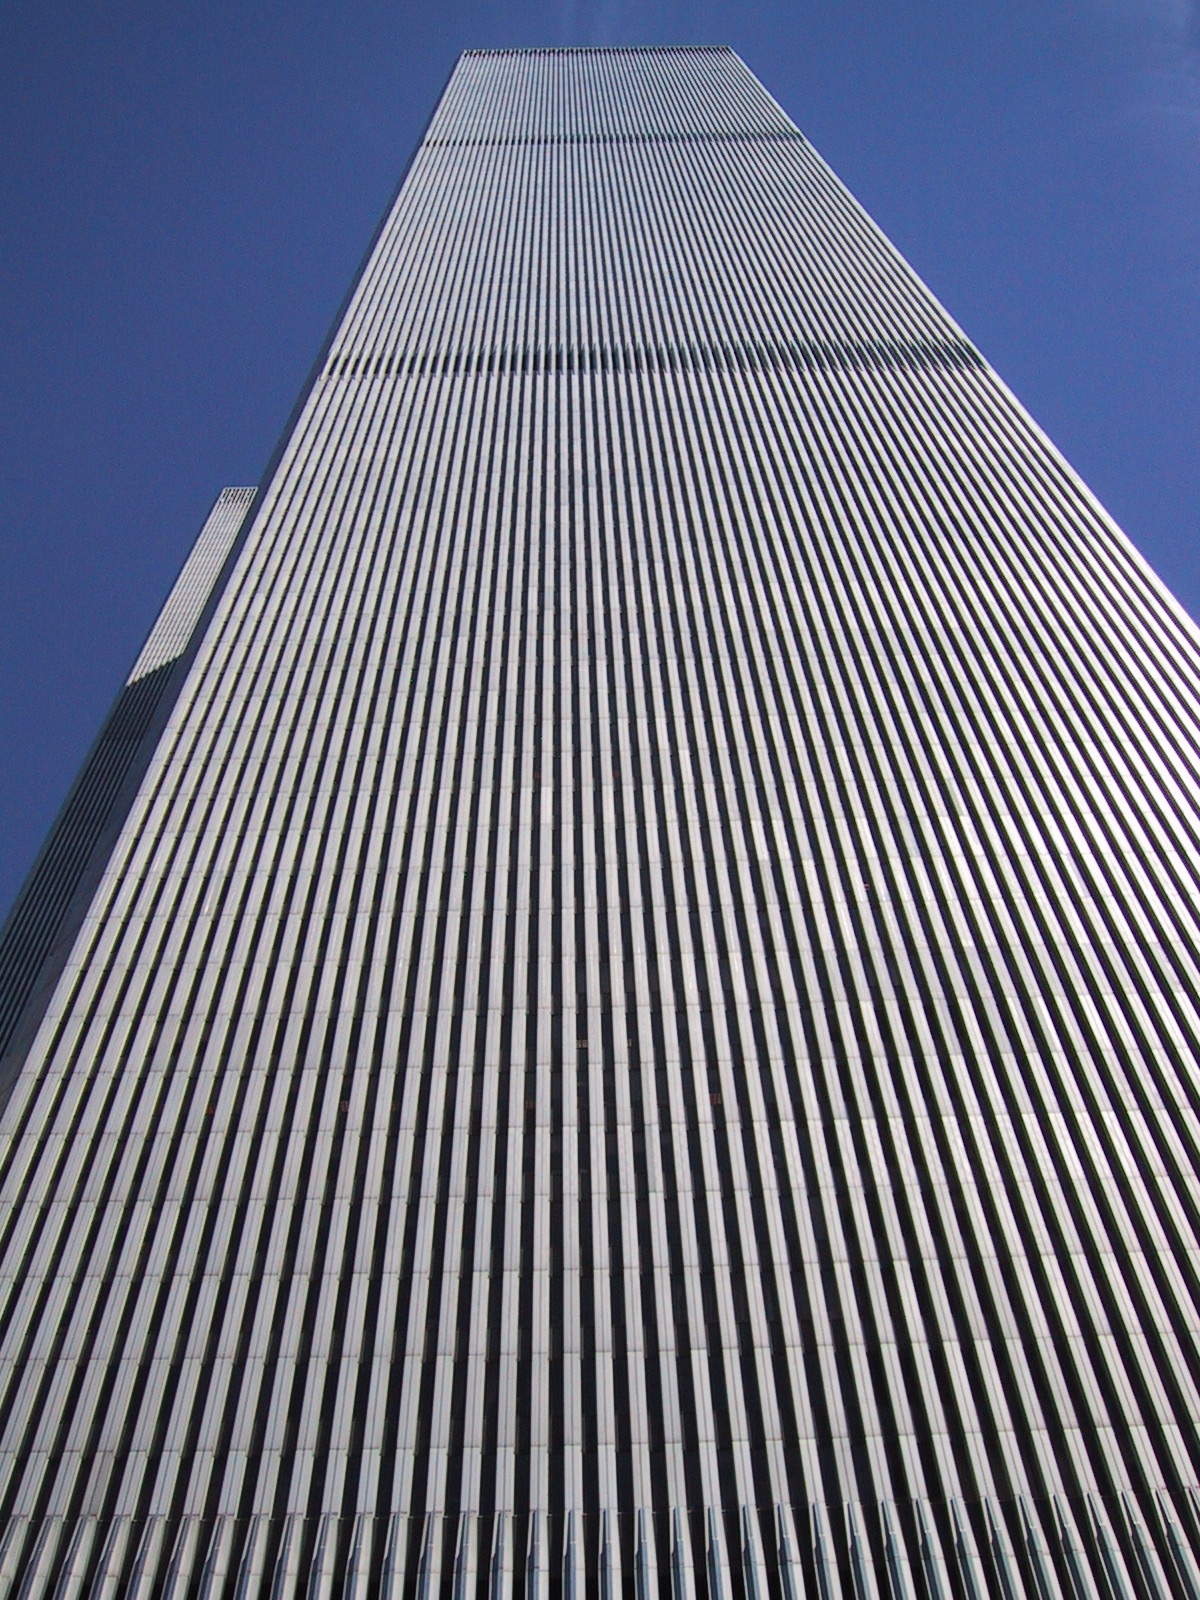 List of tenants in 2 world trade center wikipedia gumiabroncs Image collections